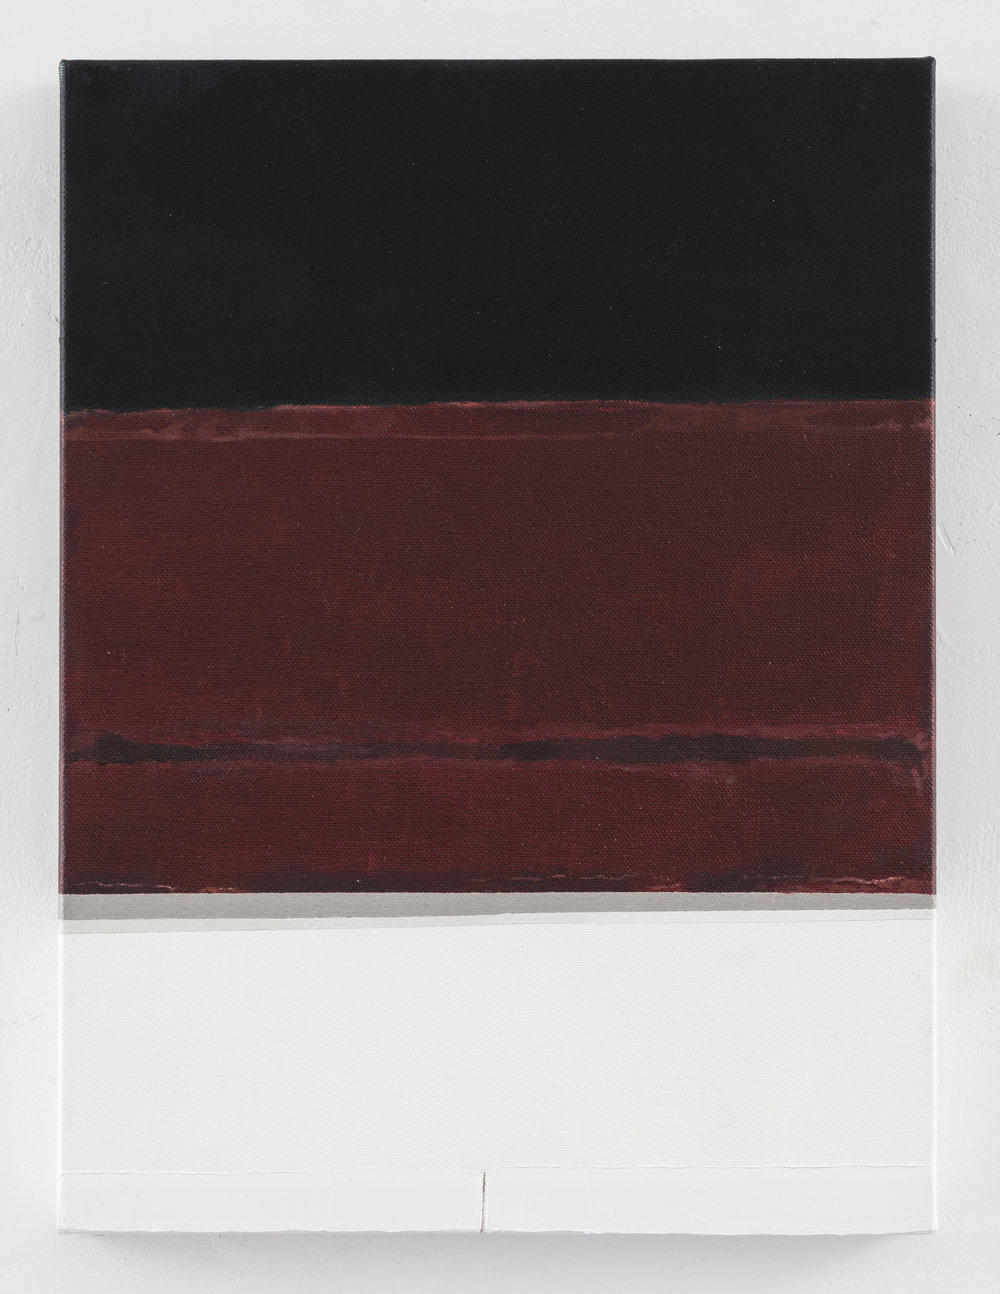 Rothko's window II, 2016, oil on canvas,11 x 15 inches